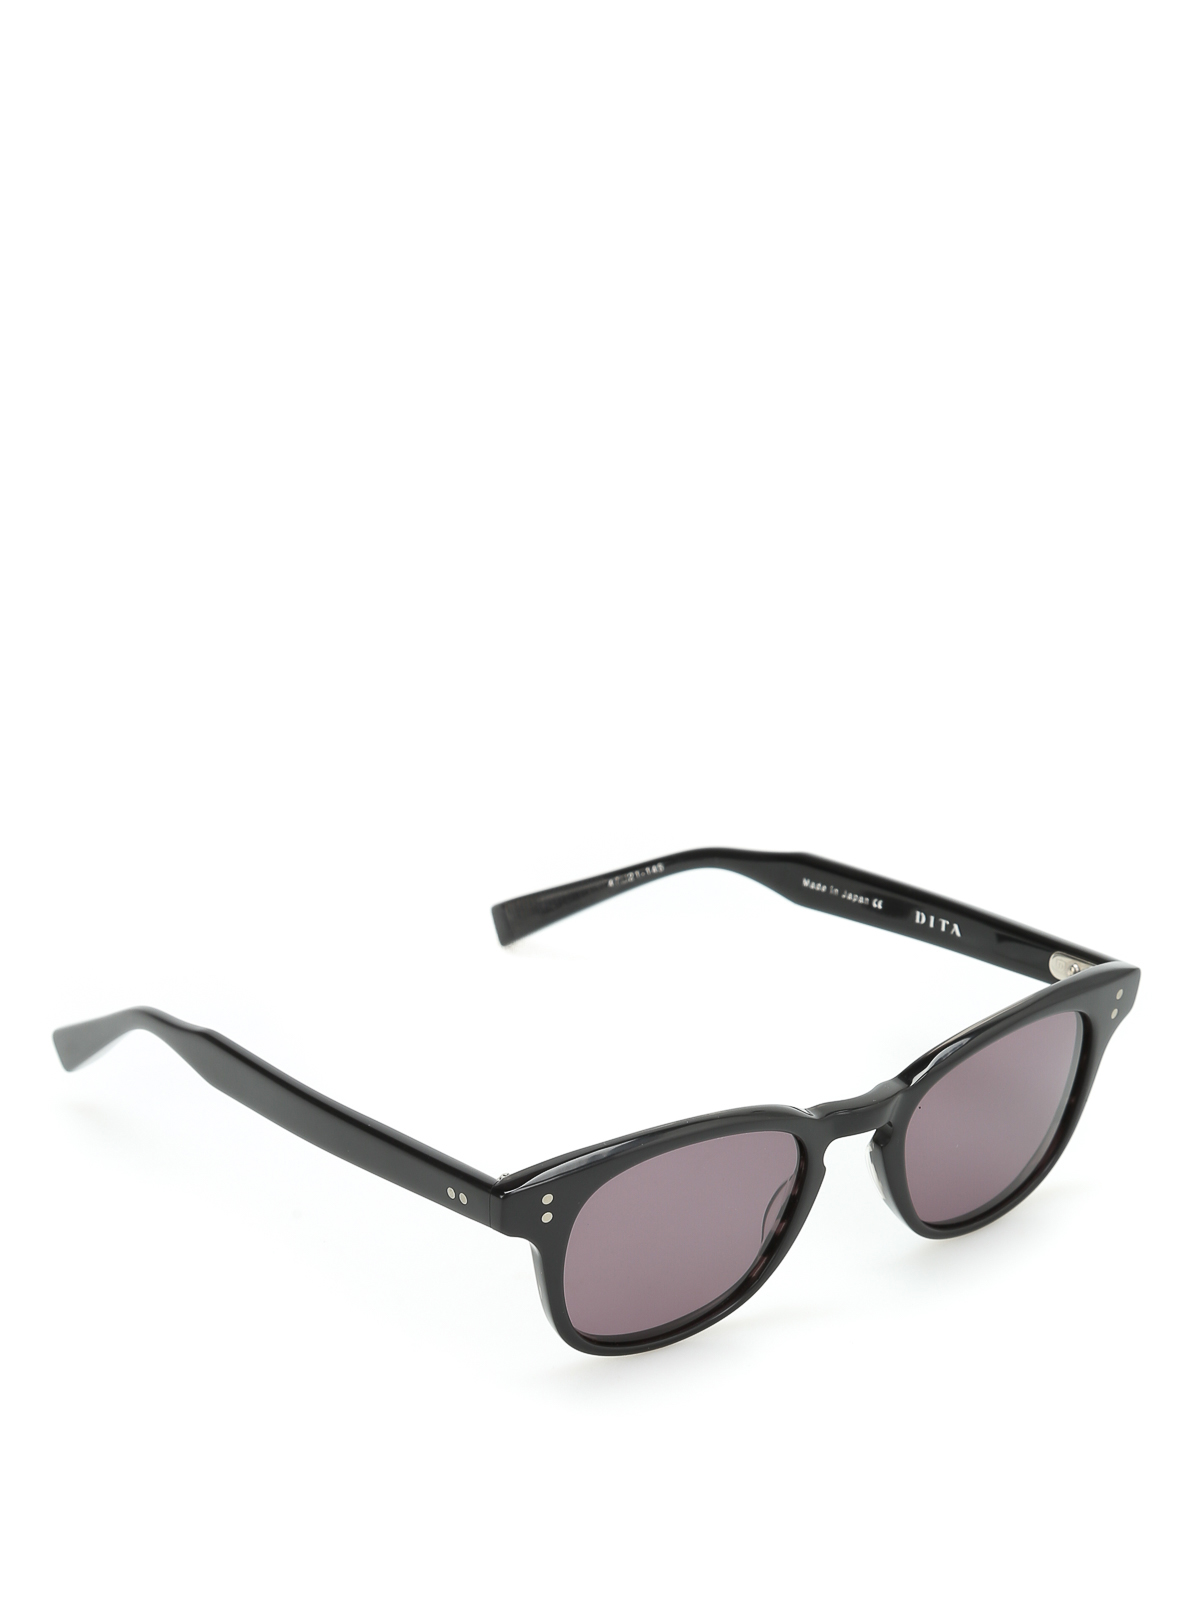 01716315bd45 Outsider sunglasses by Dita - sunglasses